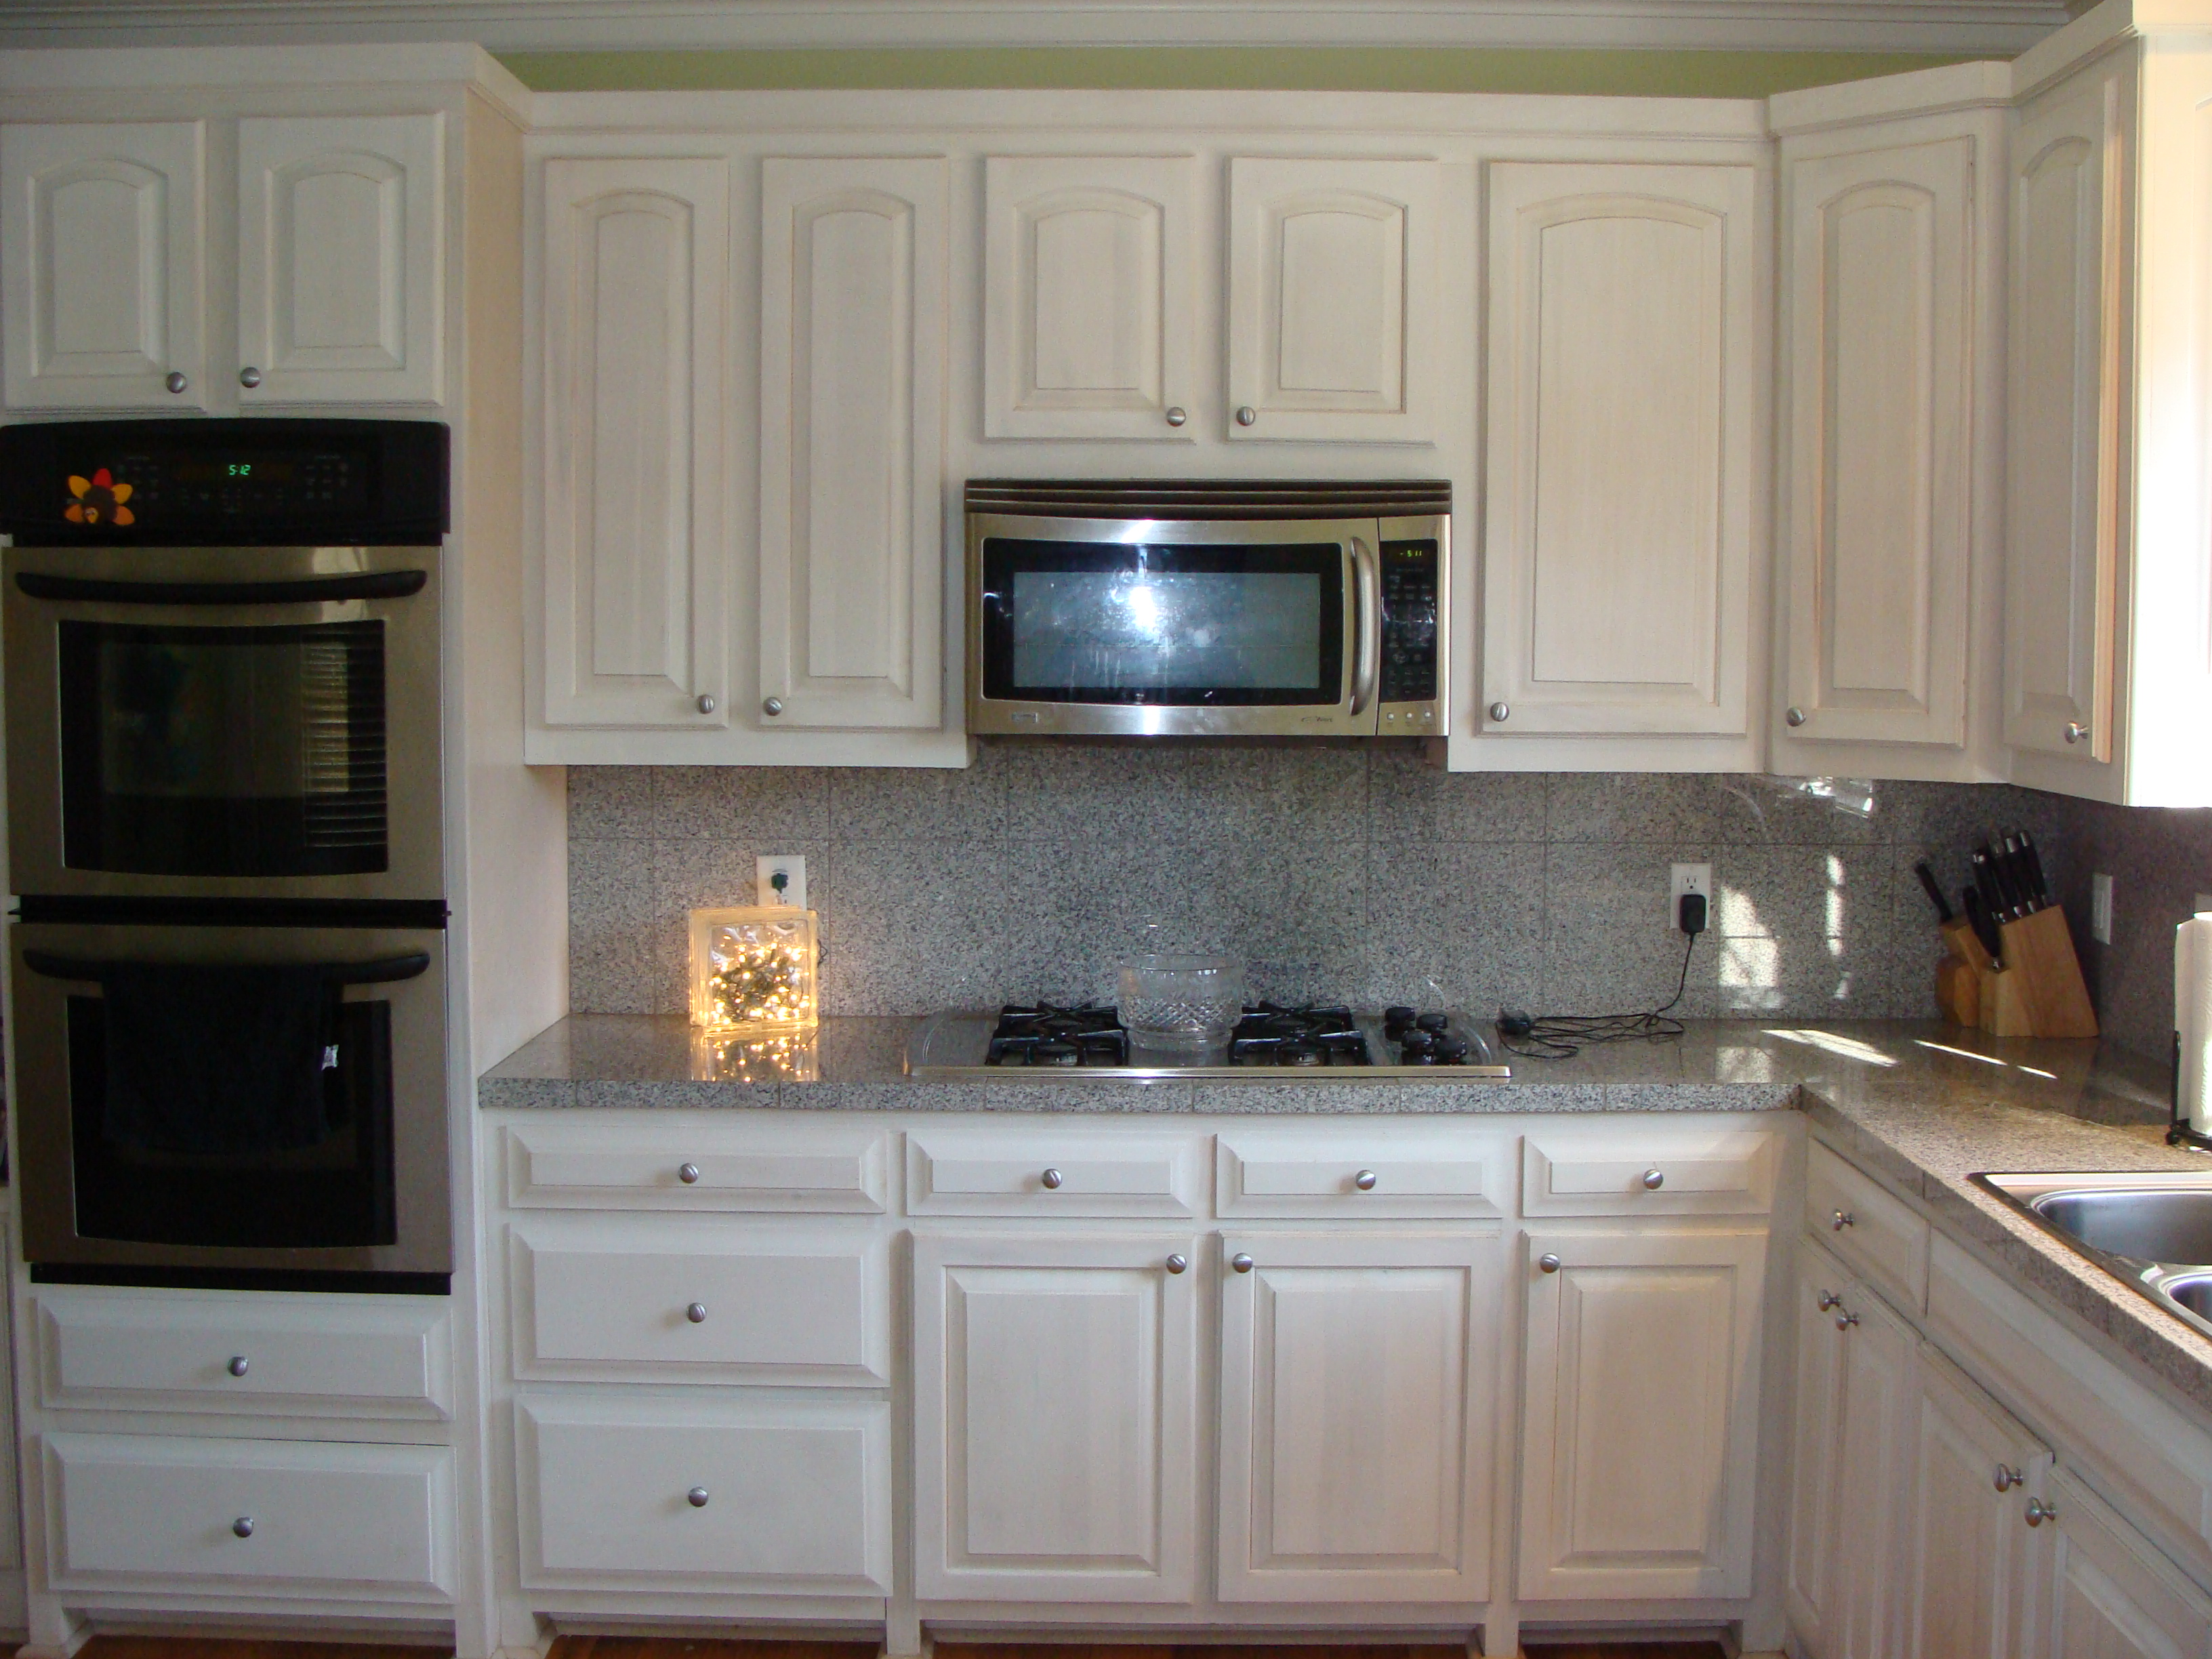 Kitchen pantry cabinet Photo - 9